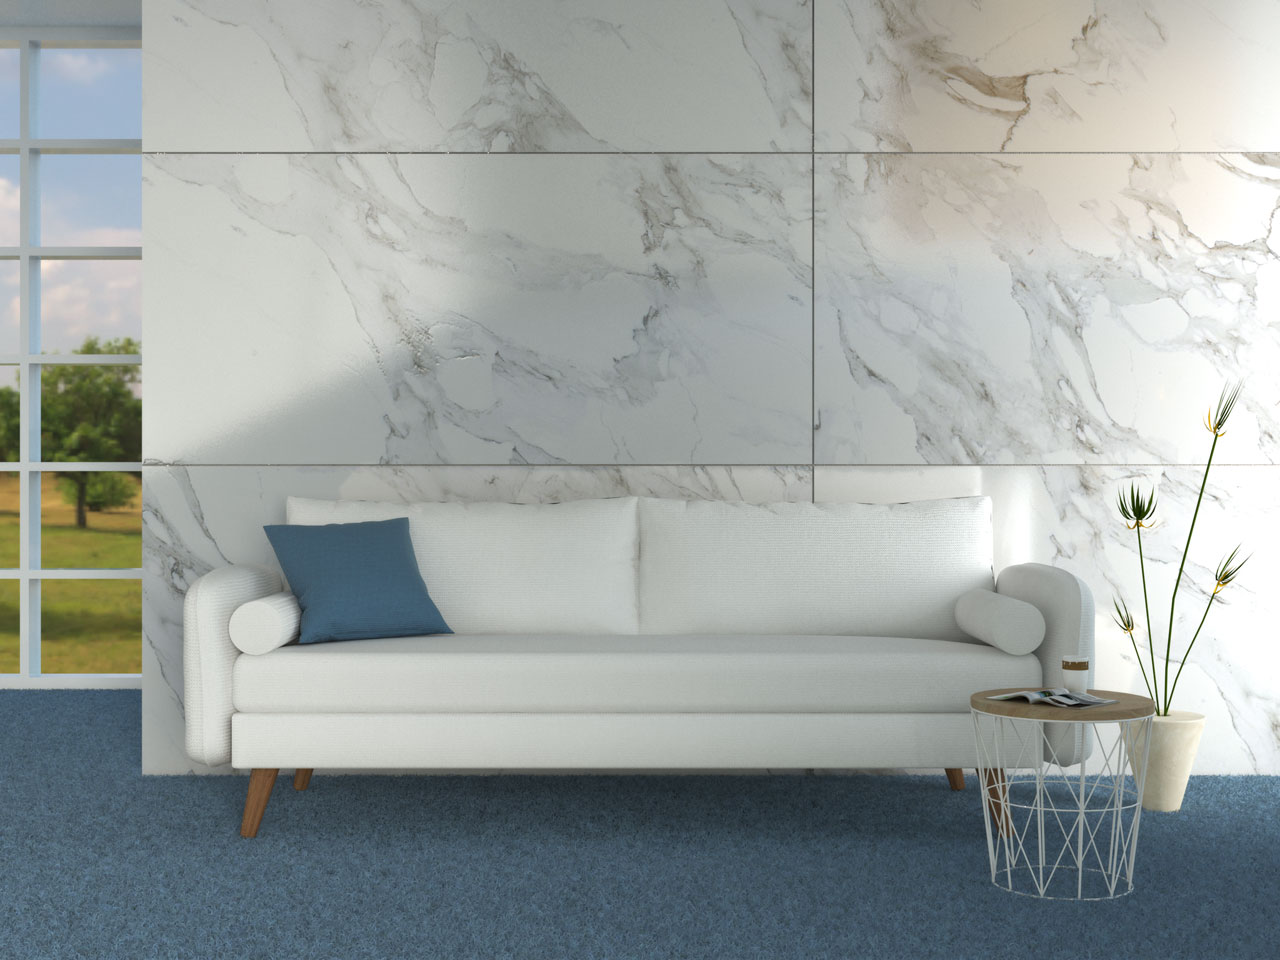 White couch with blue carpet